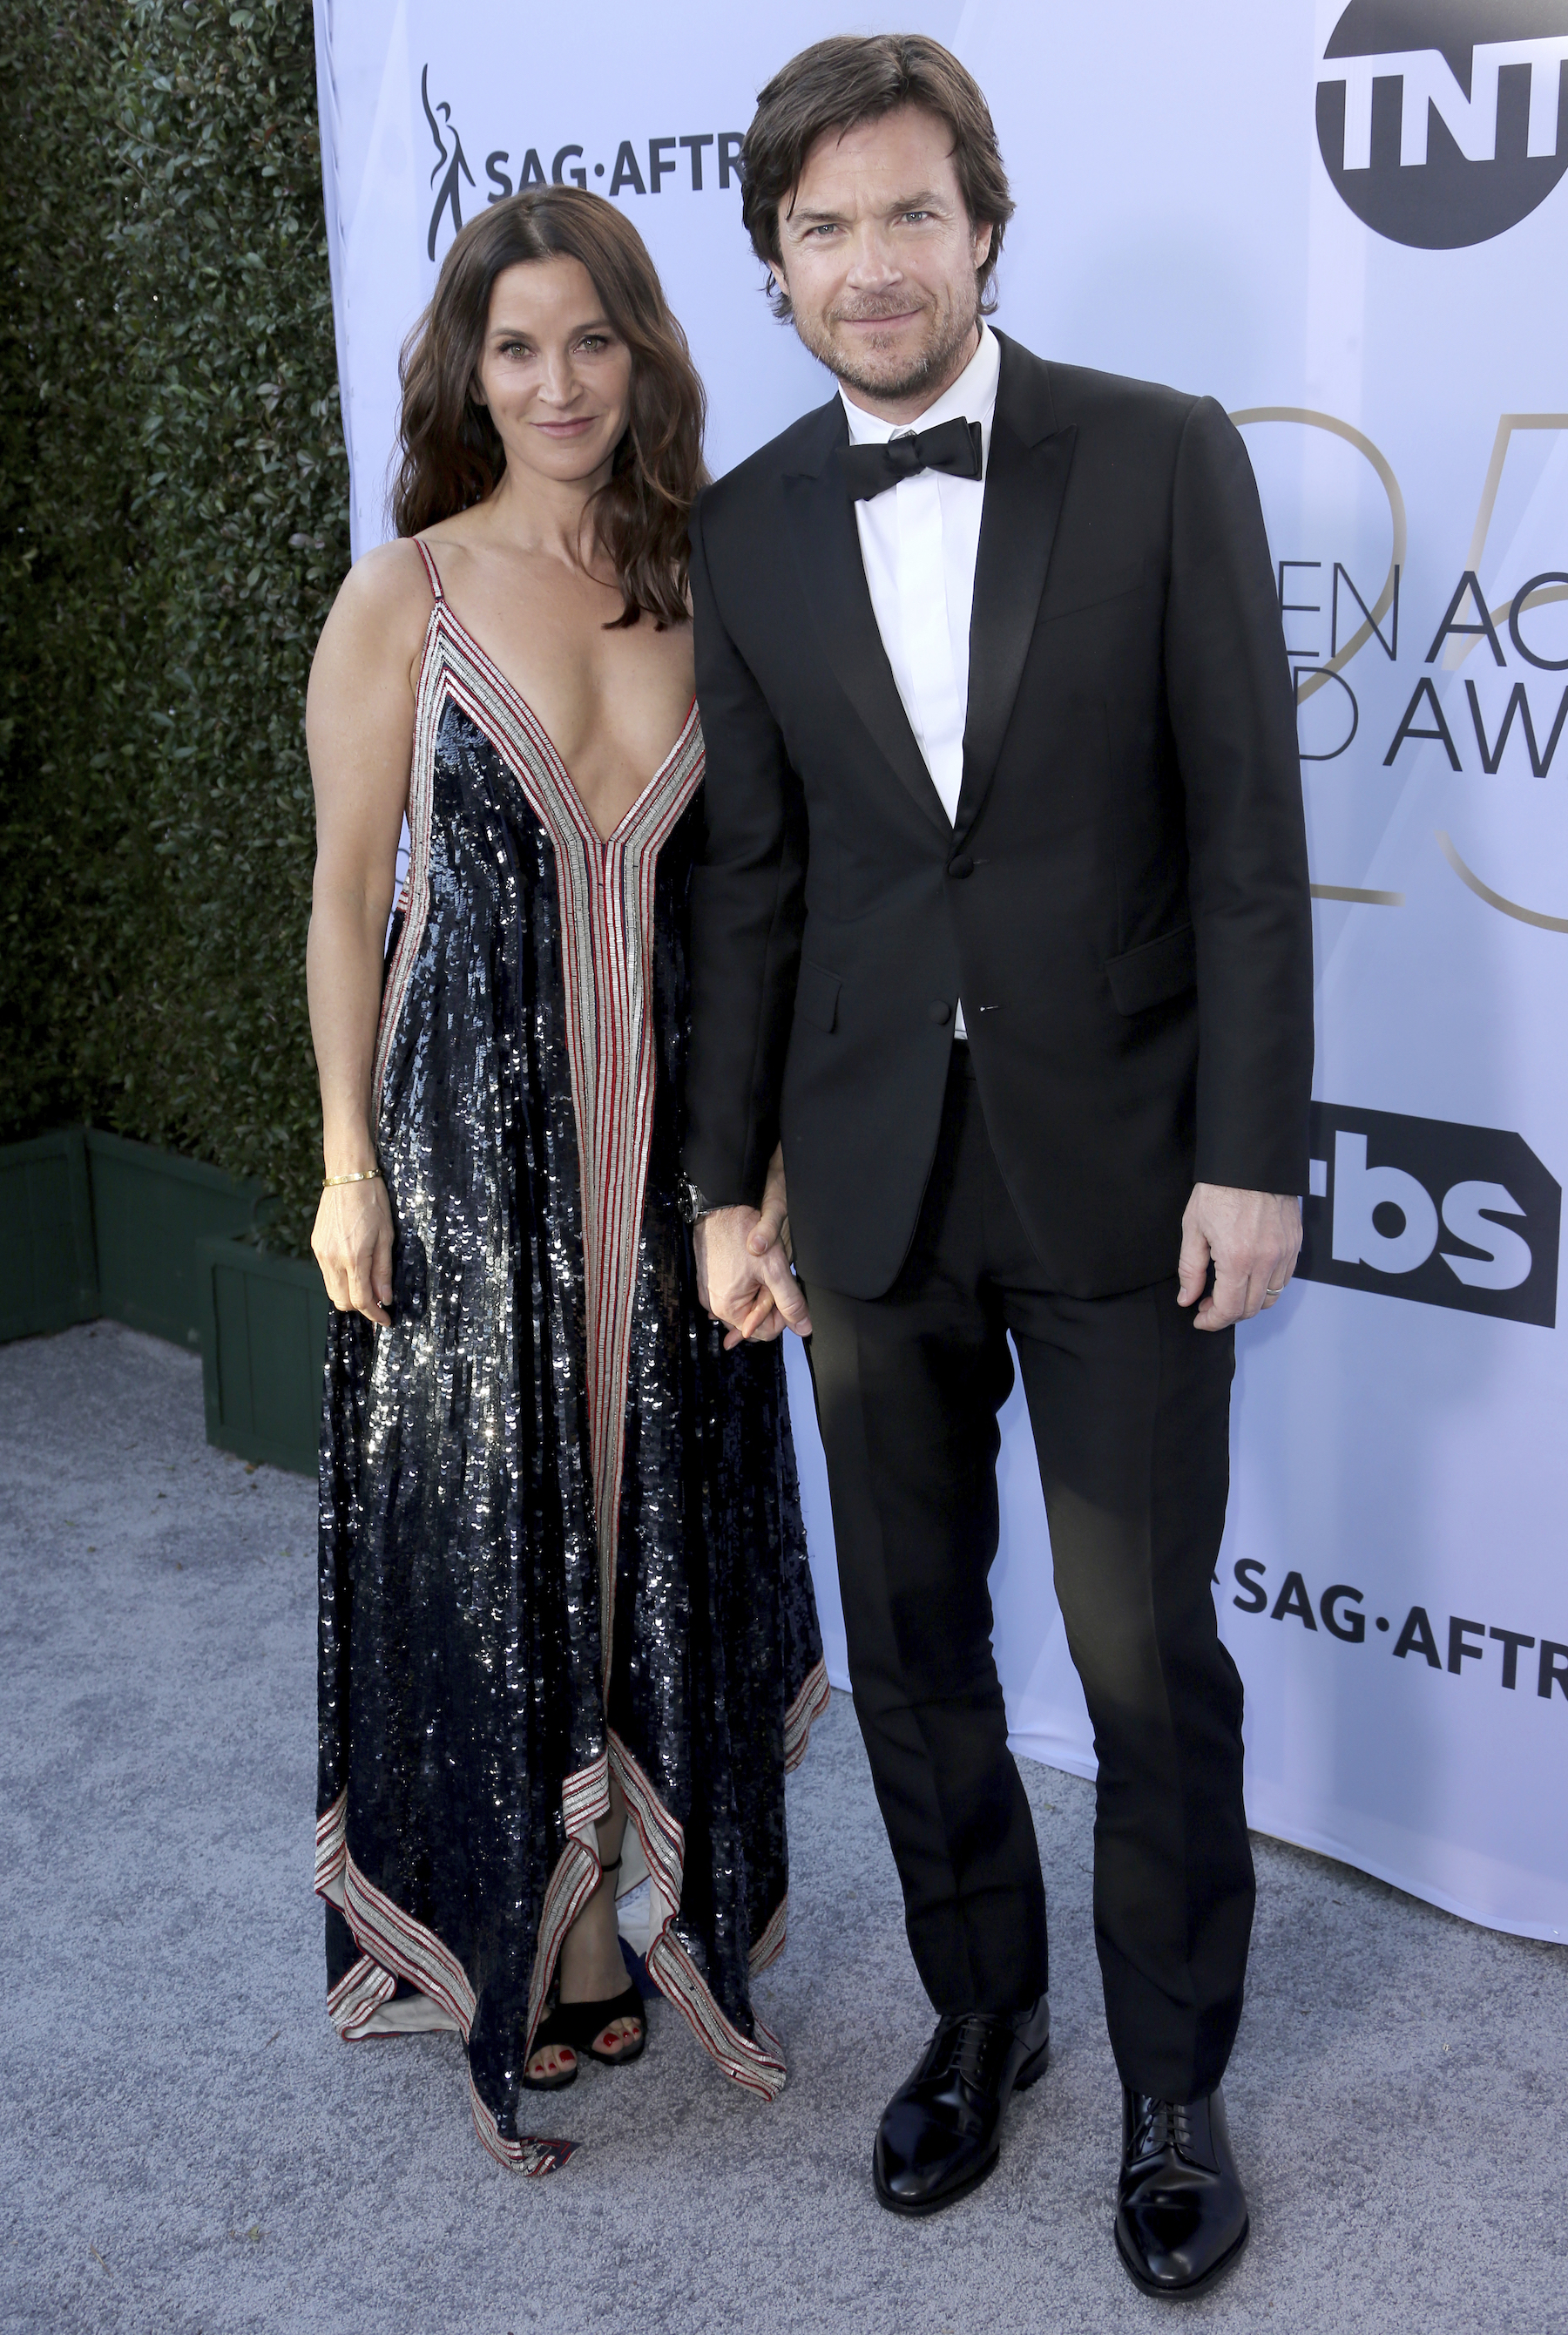 <div class='meta'><div class='origin-logo' data-origin='AP'></div><span class='caption-text' data-credit='Willy Sanjuan/Invision/AP'>Jason Bateman, right, and Amanda Anka arrive at the 25th annual Screen Actors Guild Awards at the Shrine Auditorium & Expo Hall on Sunday, Jan. 27, 2019, in Los Angeles.</span></div>